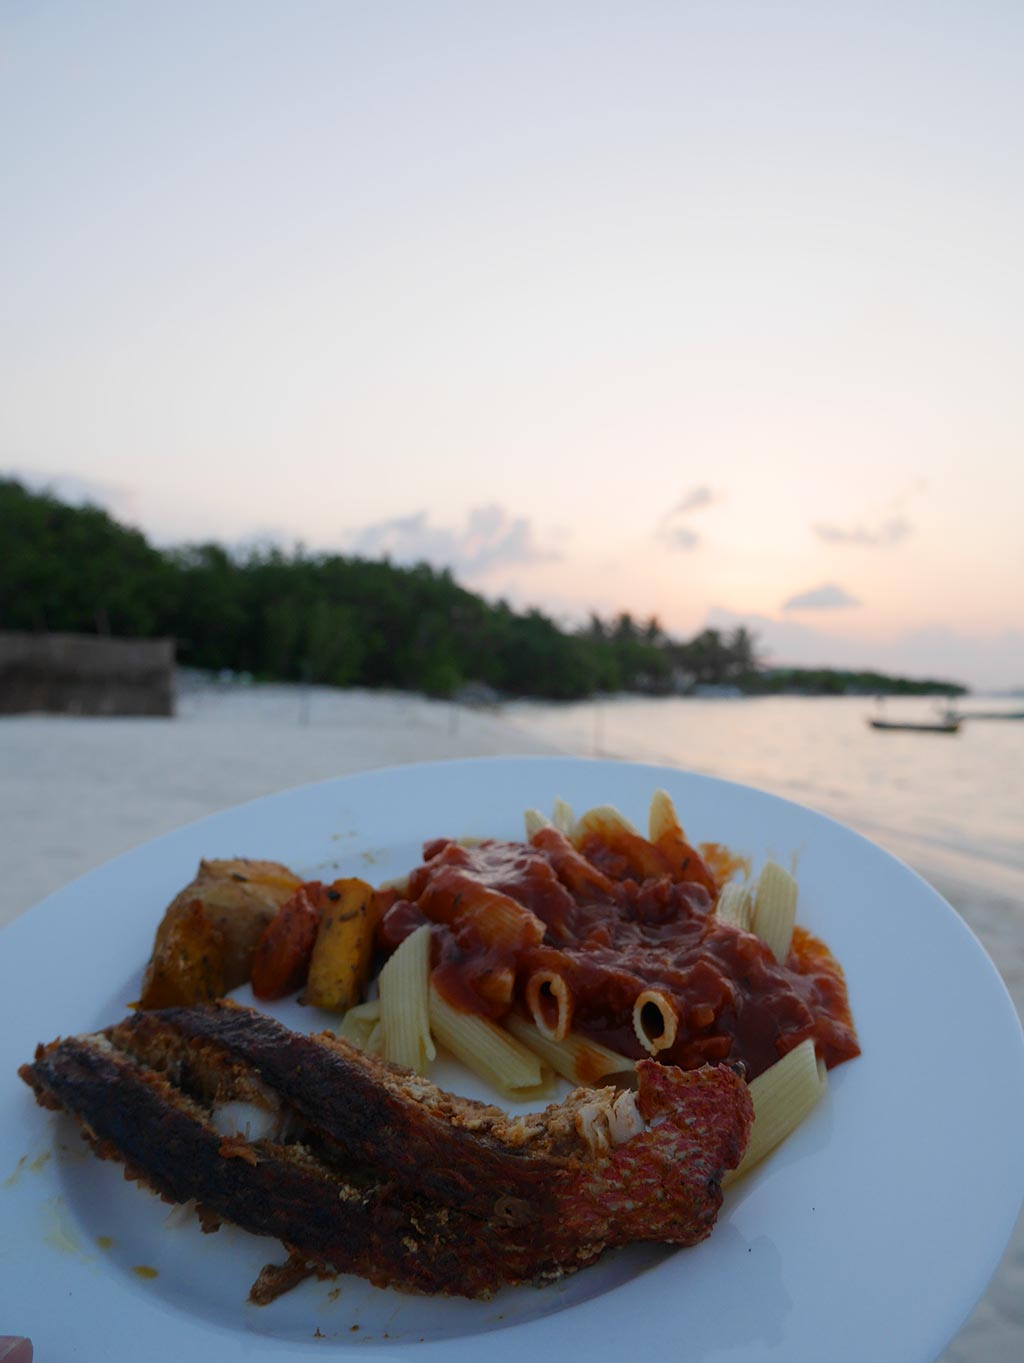 sunset dinner, bikini beach, Gaafaru, Maldives